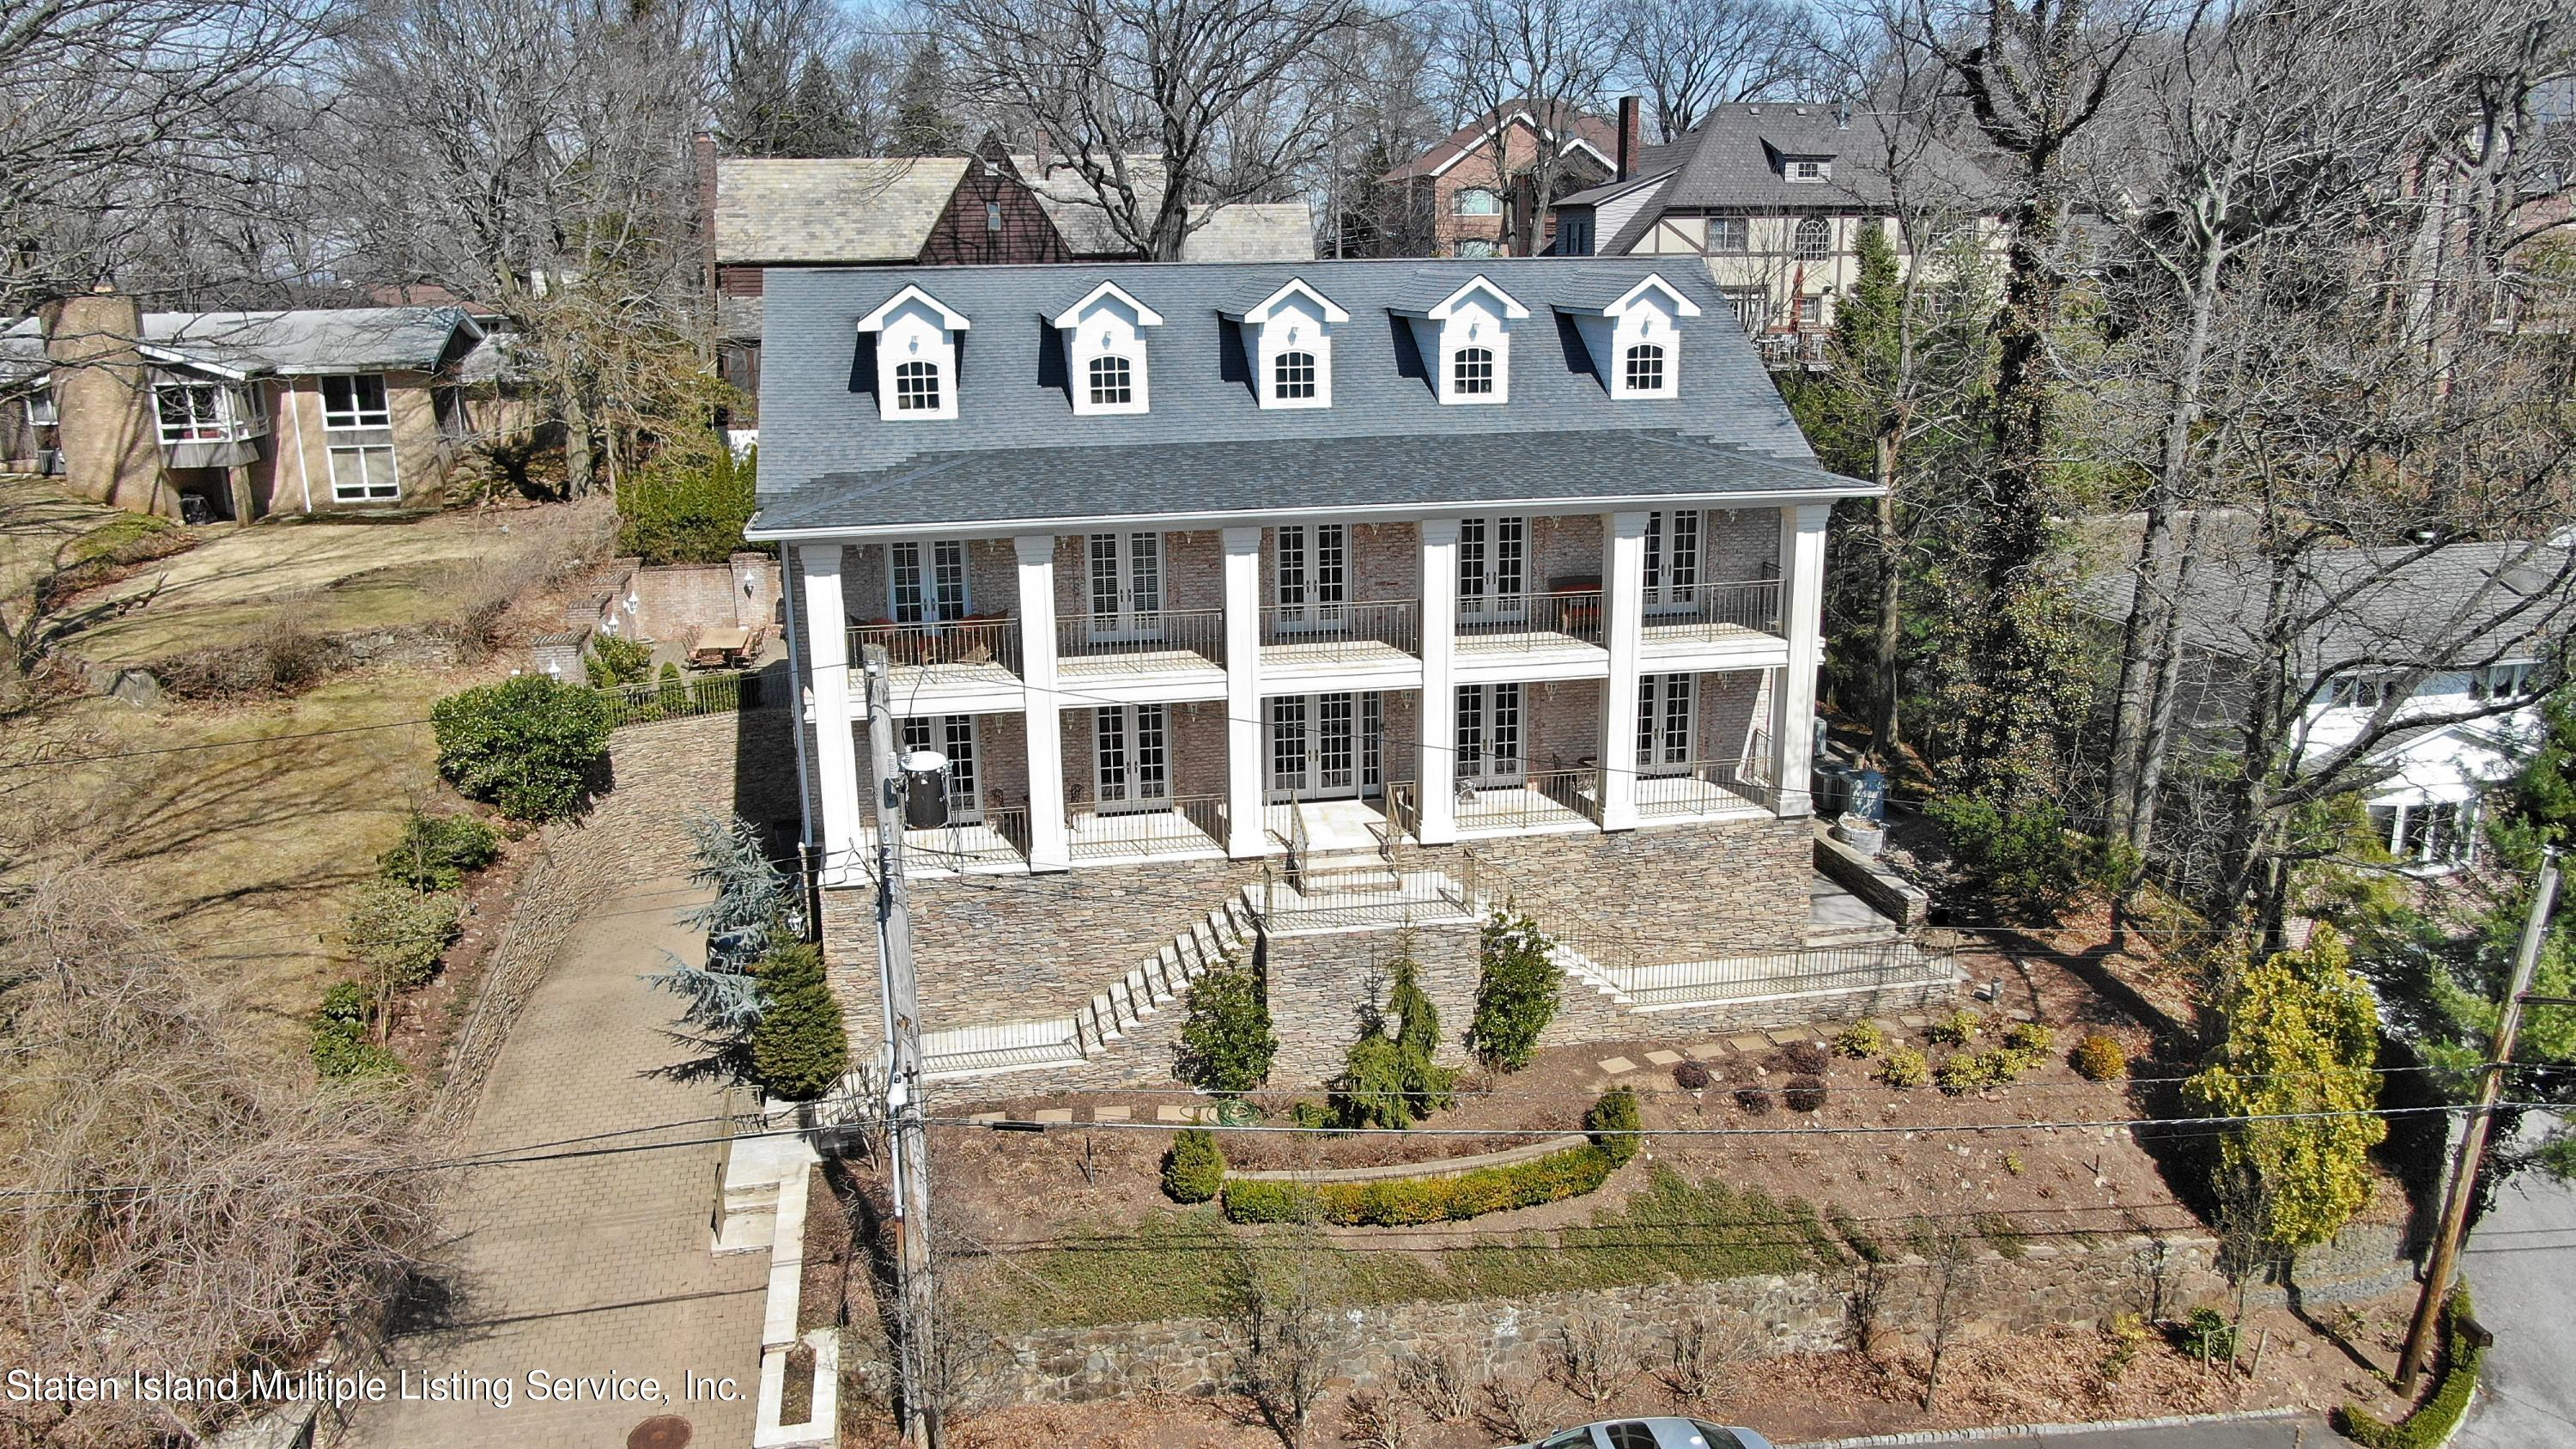 Single Family - Detached in Todt Hill - 129 Coverly Avenue   Staten Island, NY 10301